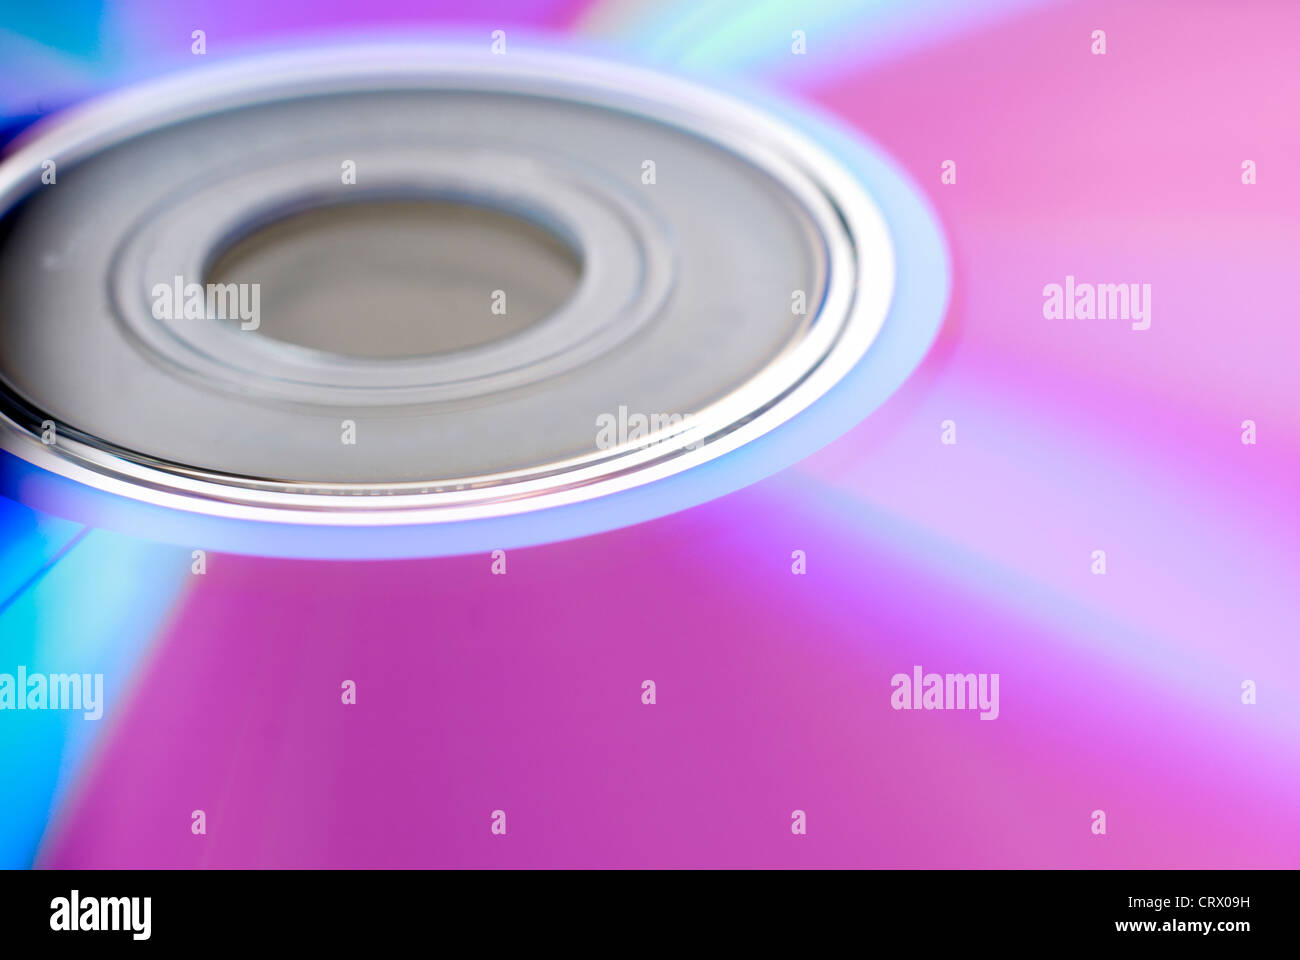 Recordable DVD disc close-up - Stock Image